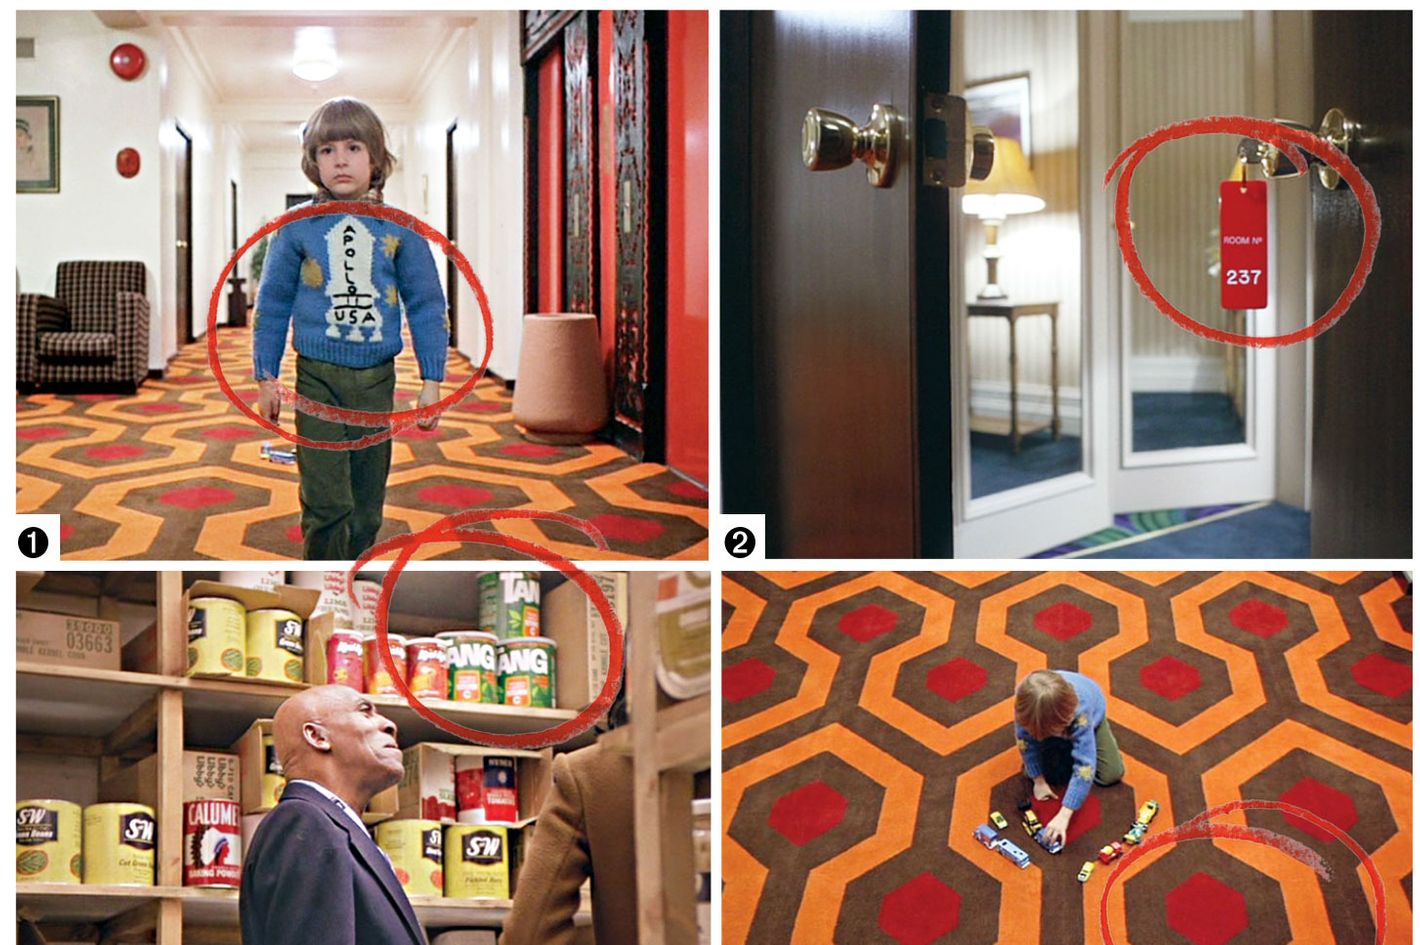 Four Theories on The Shining From the New Documentary Room 237